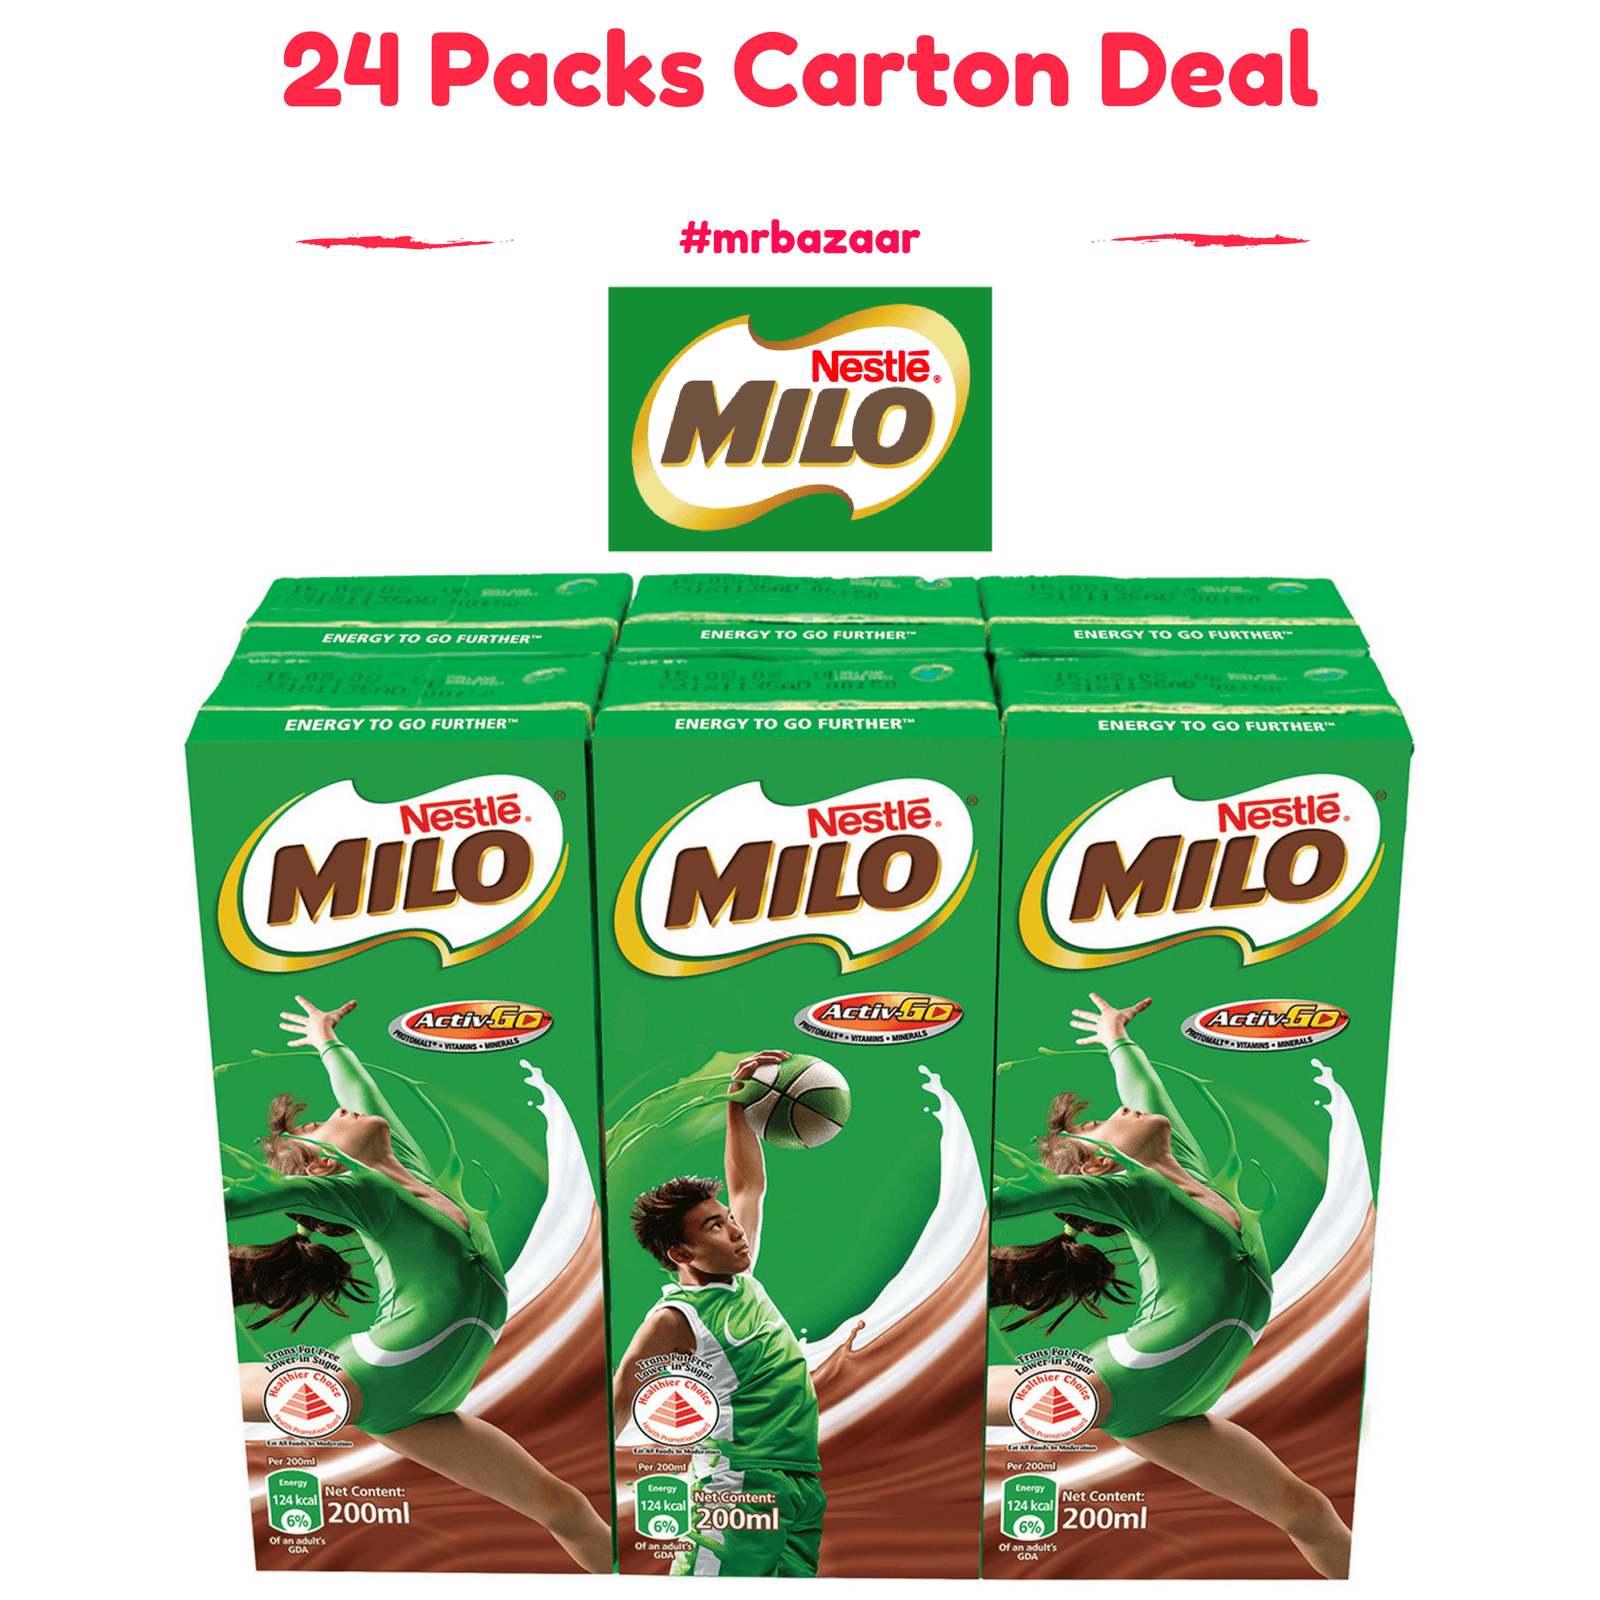 Nestle Milo UHT Chocolate Malt Packet Drink 24 Packs (200ml) Carton Deal